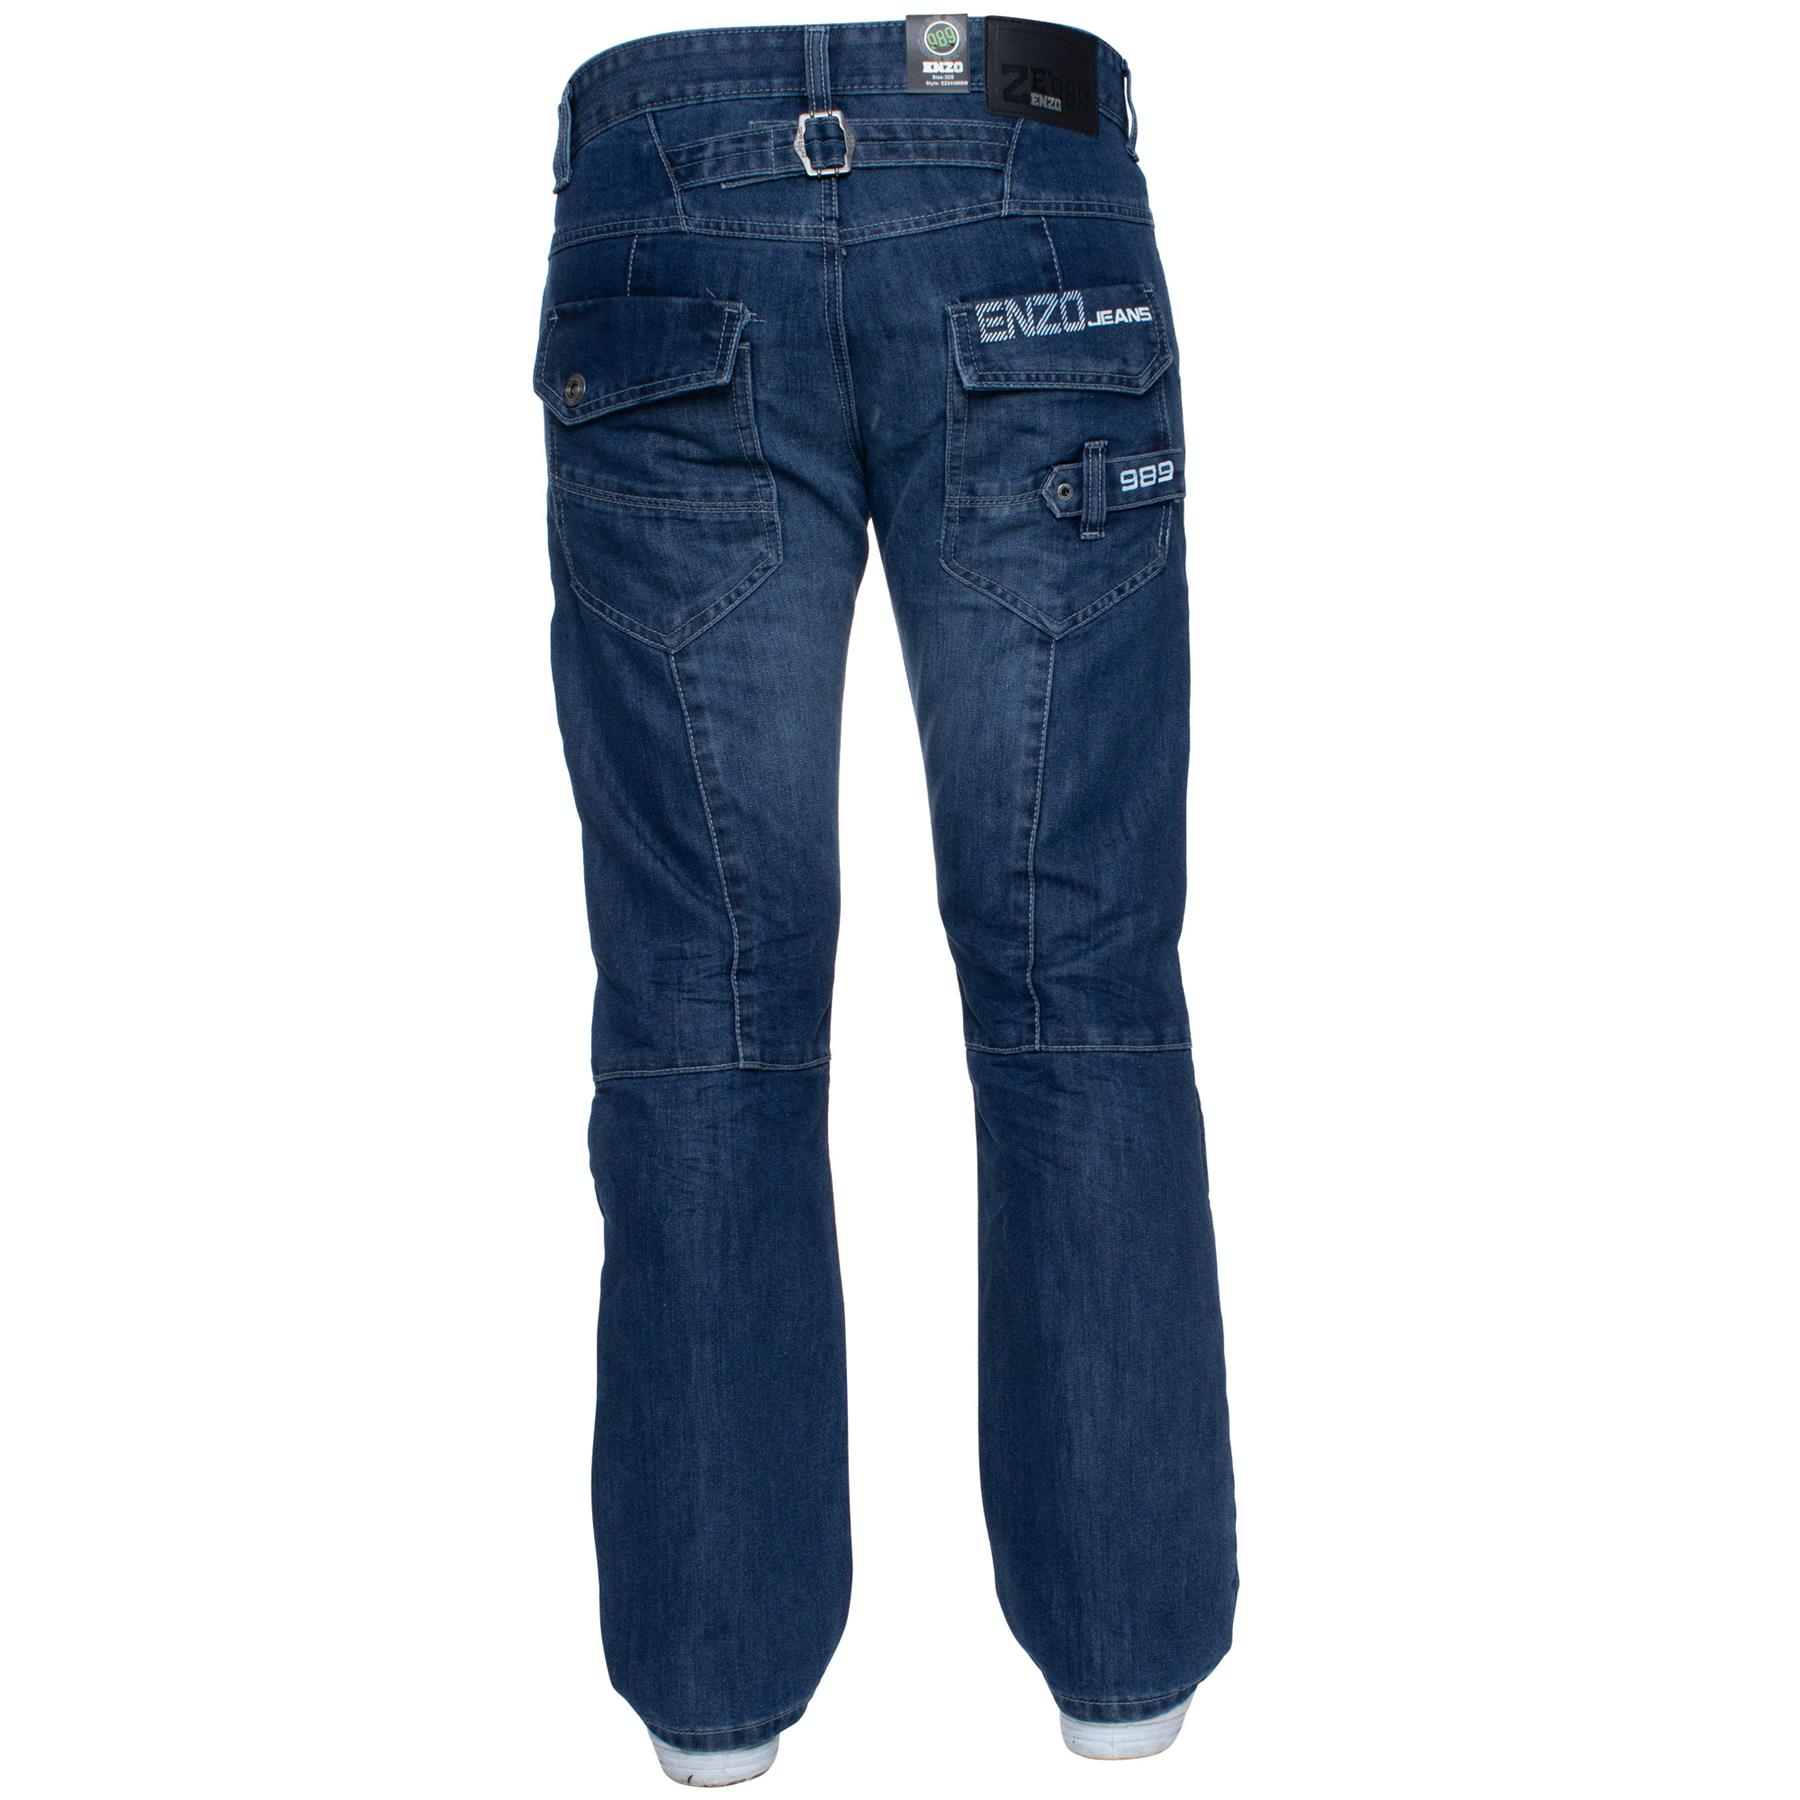 Enzo-Mens-Jeans-Big-Tall-Leg-King-Size-Denim-Pants-Chino-Trousers-Waist-44-034-60-034 miniature 101